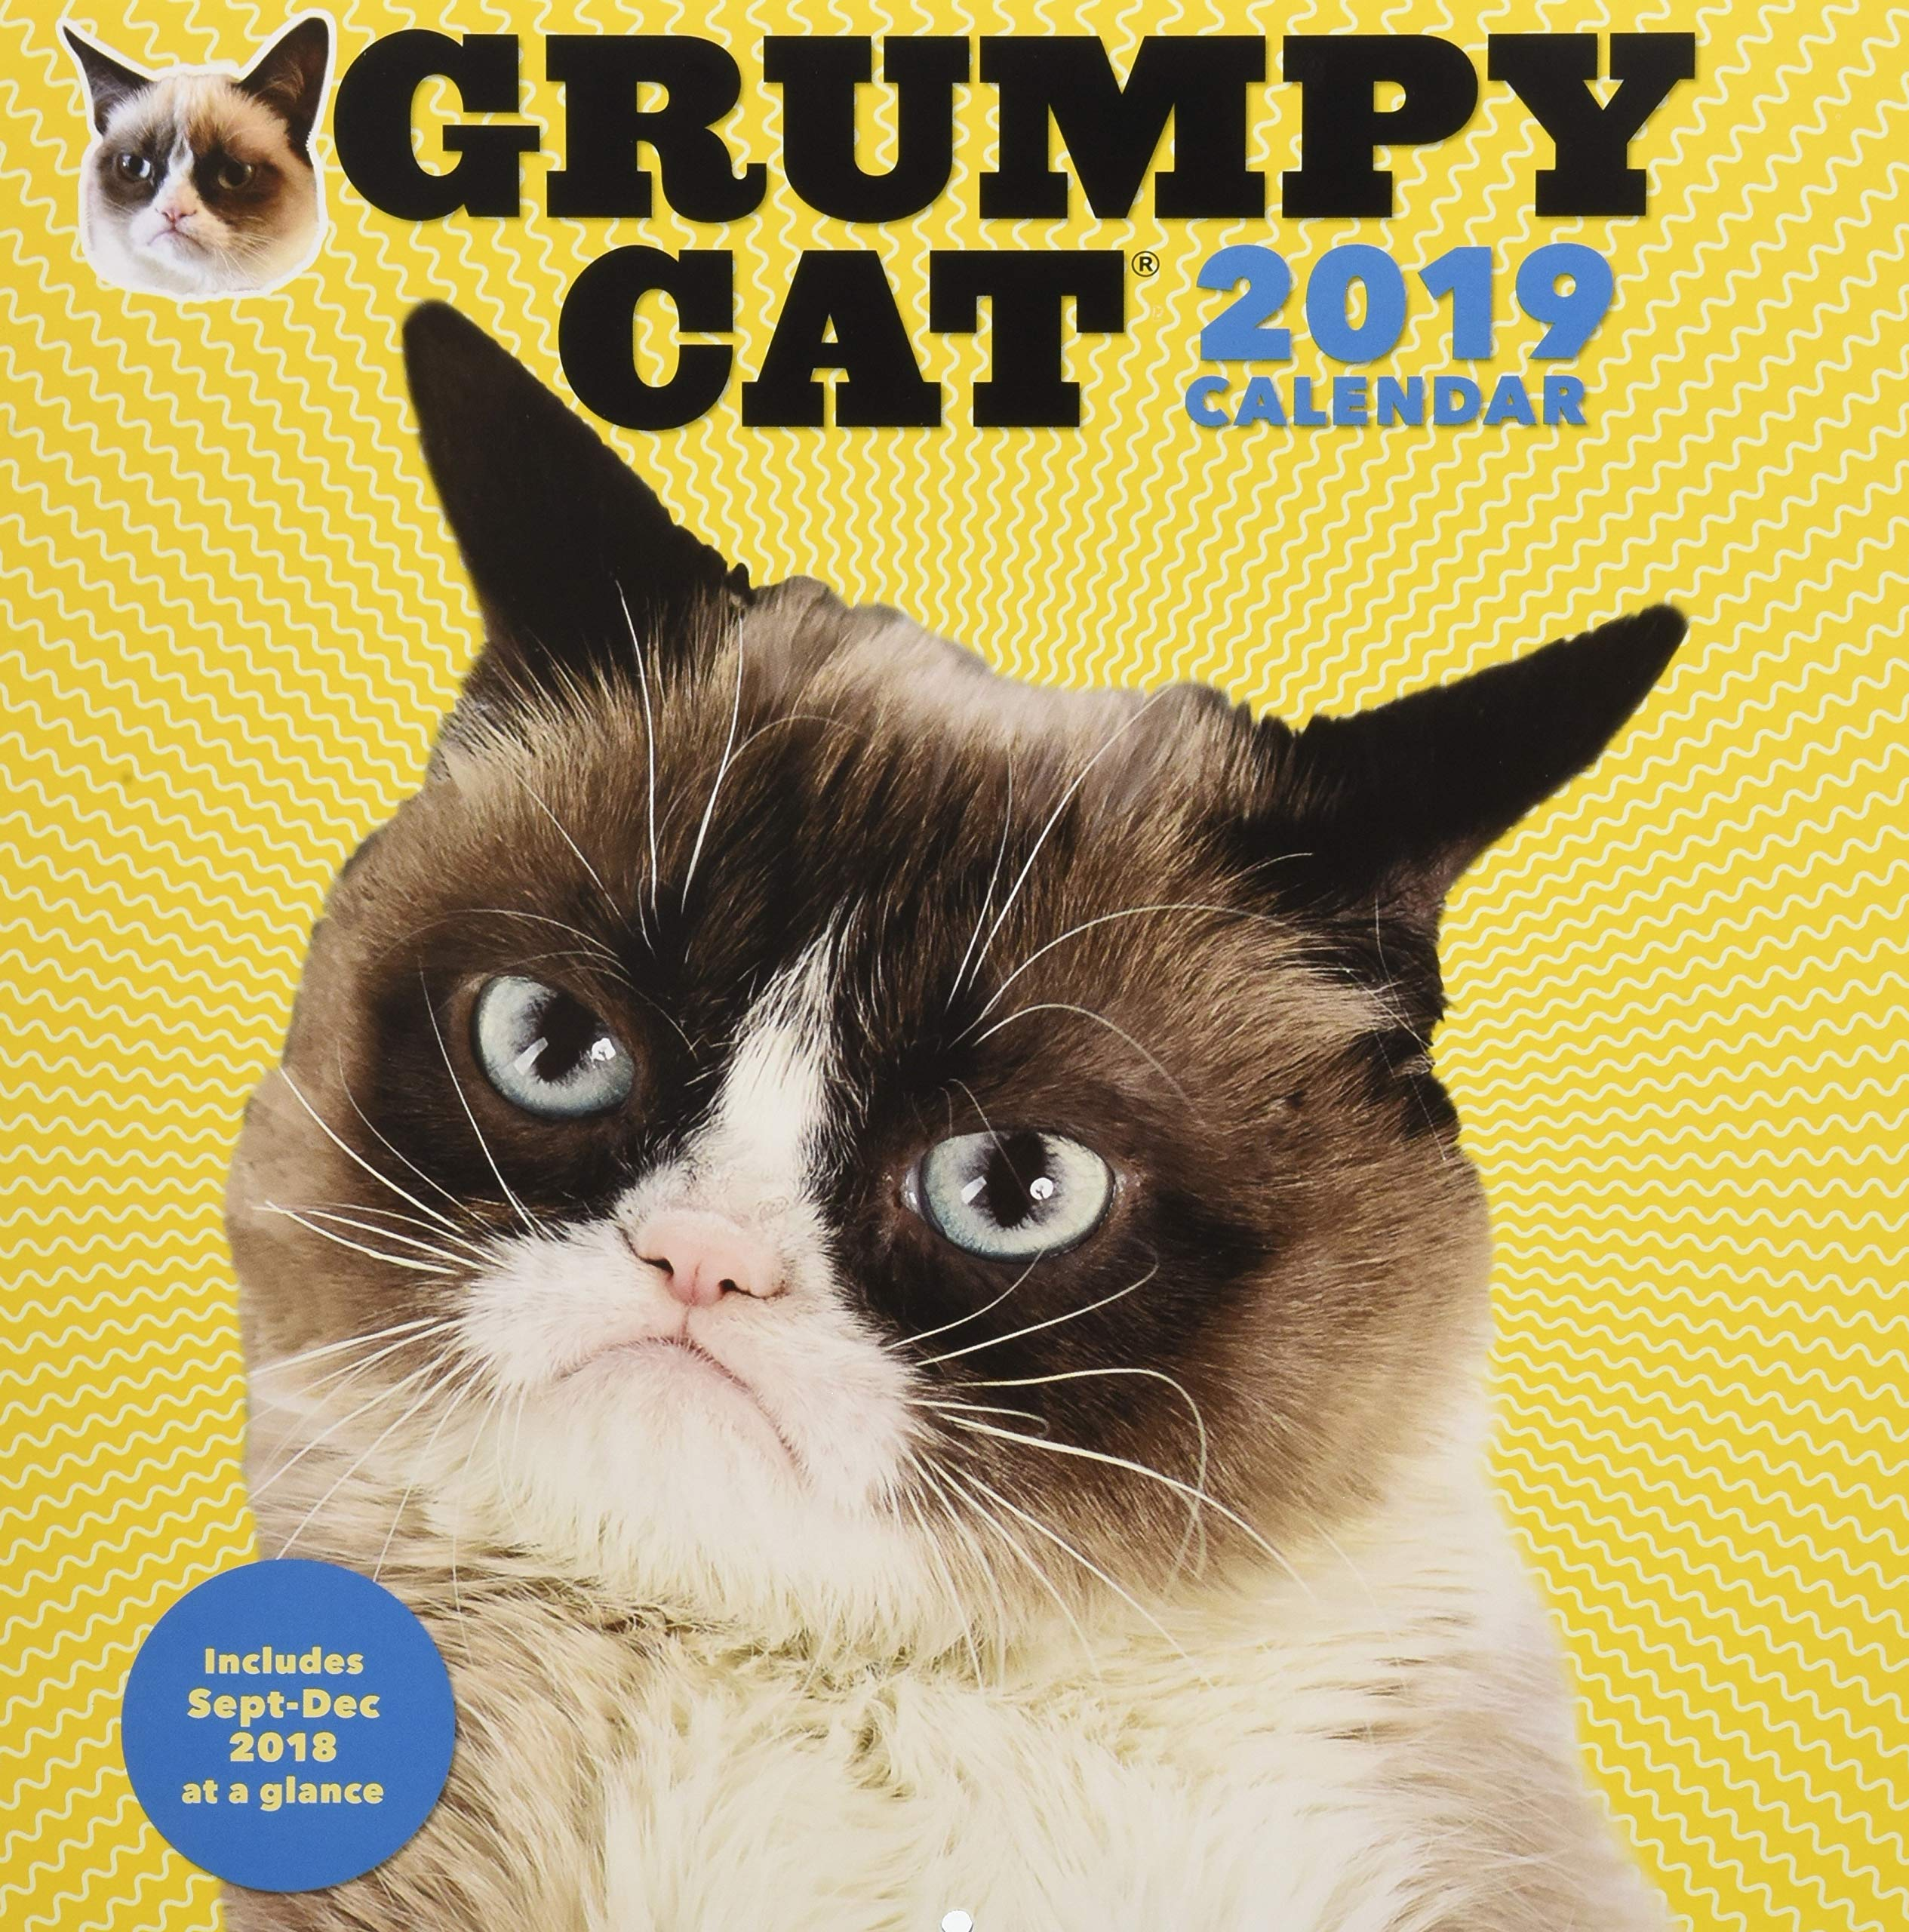 Grumpy Cat 2019 Wall Calendar